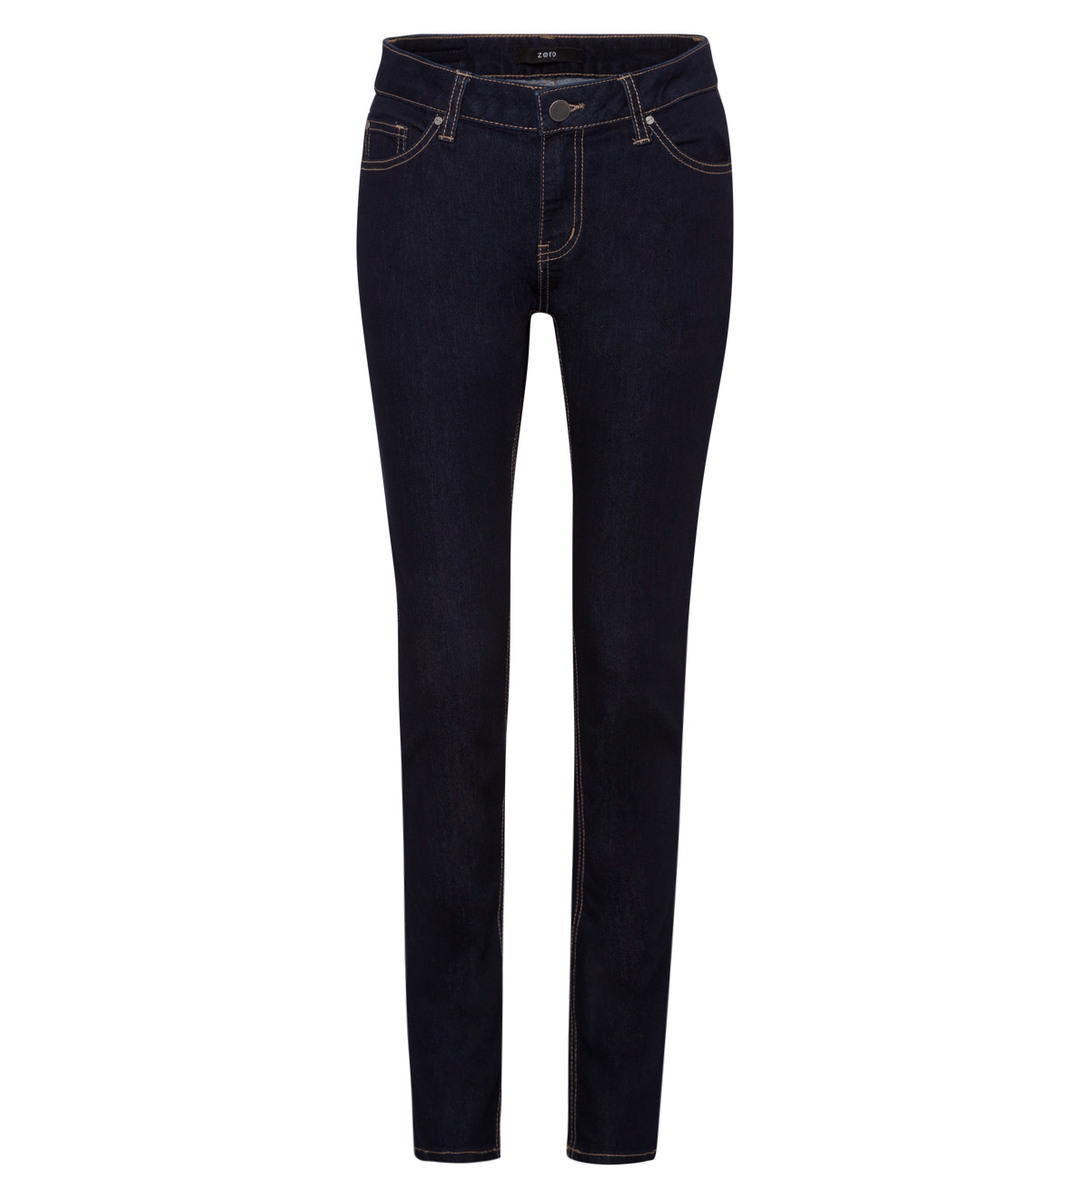 Jeans skinny fit 30 Inch in dark blue rinsed washed